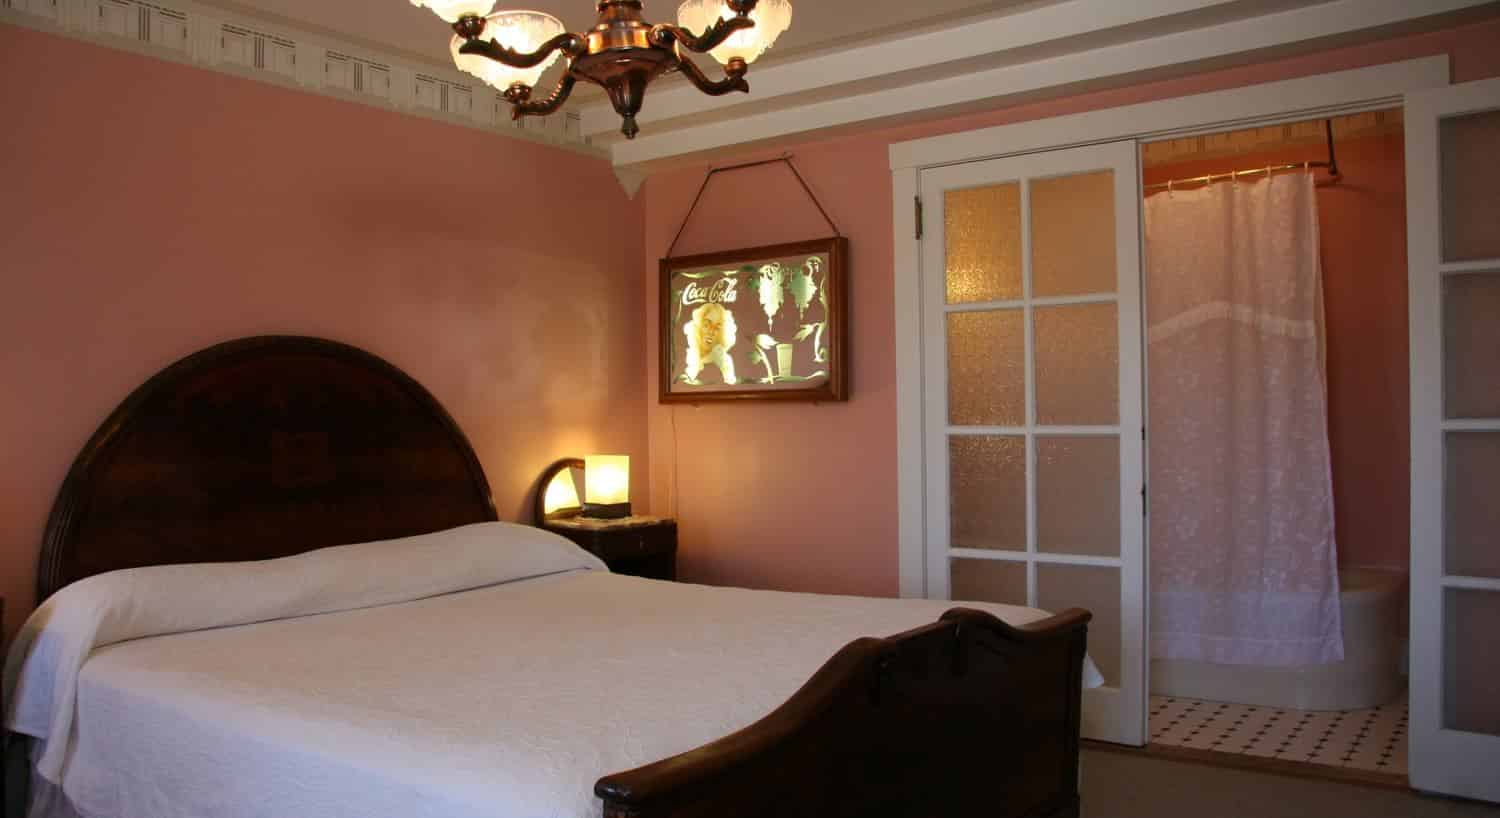 Art Deco guest room with pink walls, glass French doors, and wood bed with white bedding